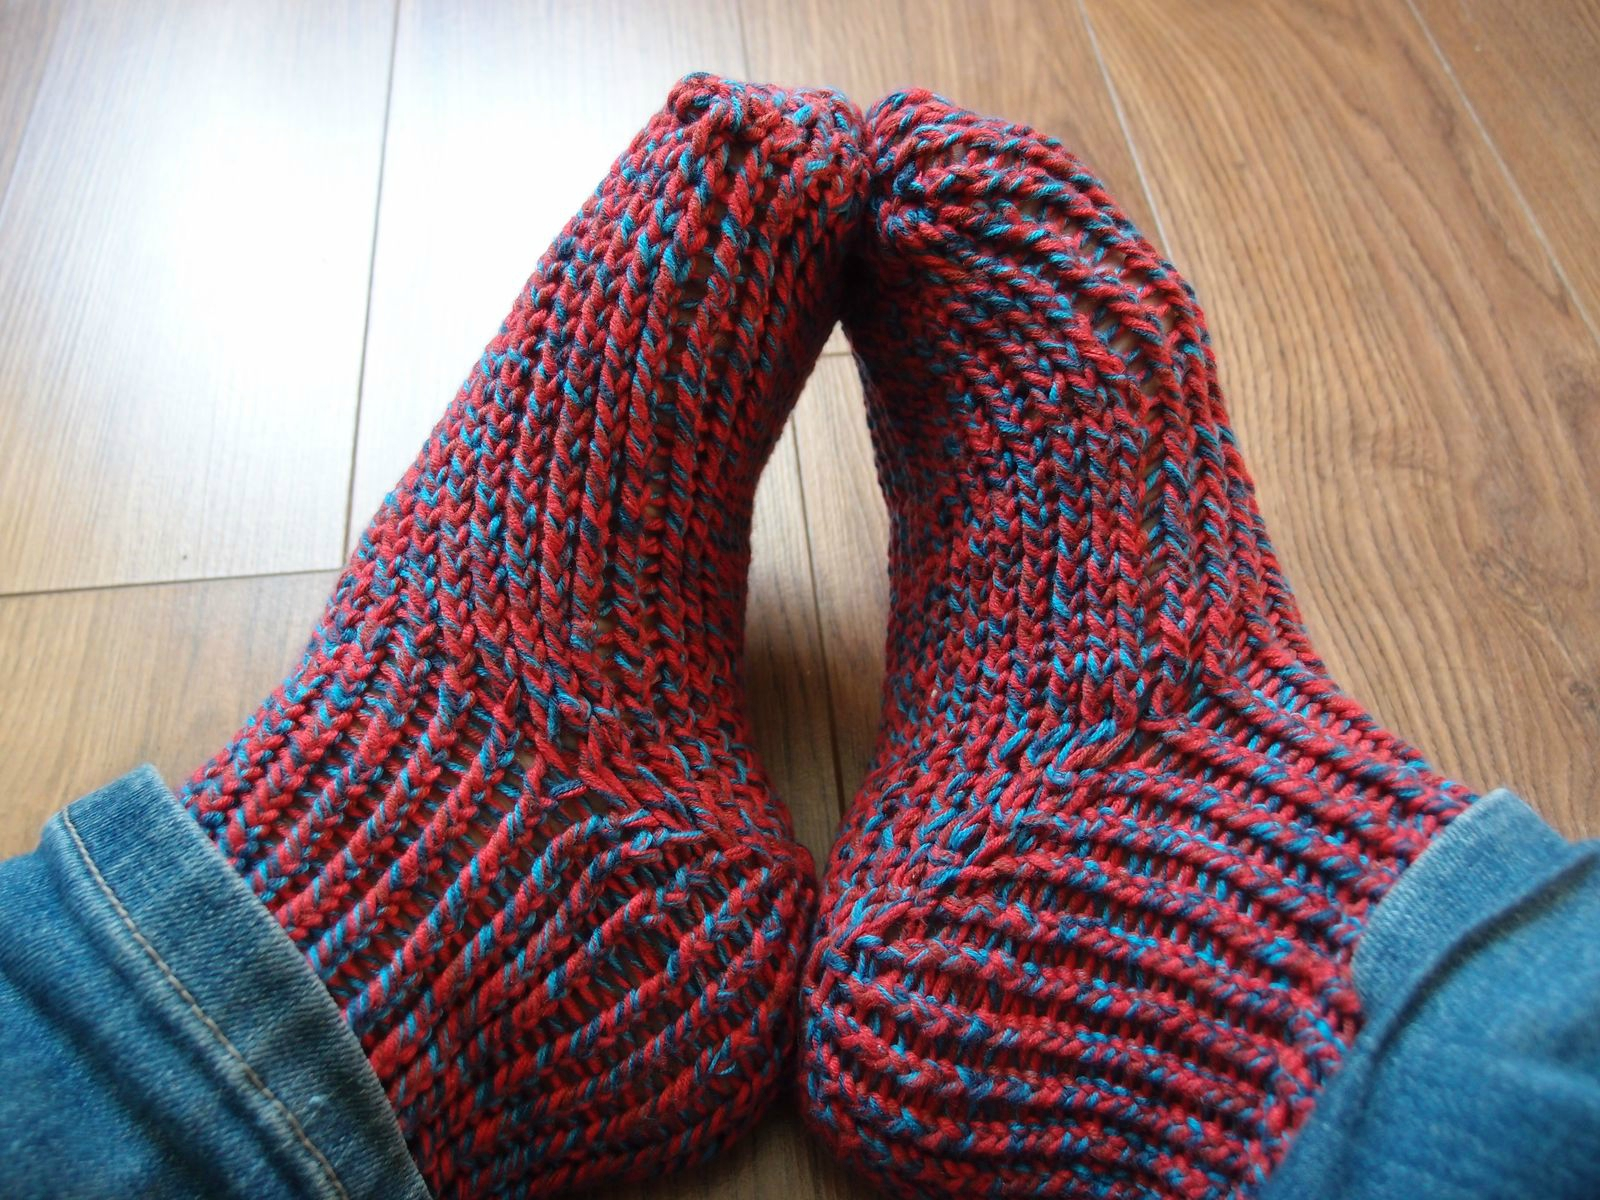 Tricoter chaussettes tricotin